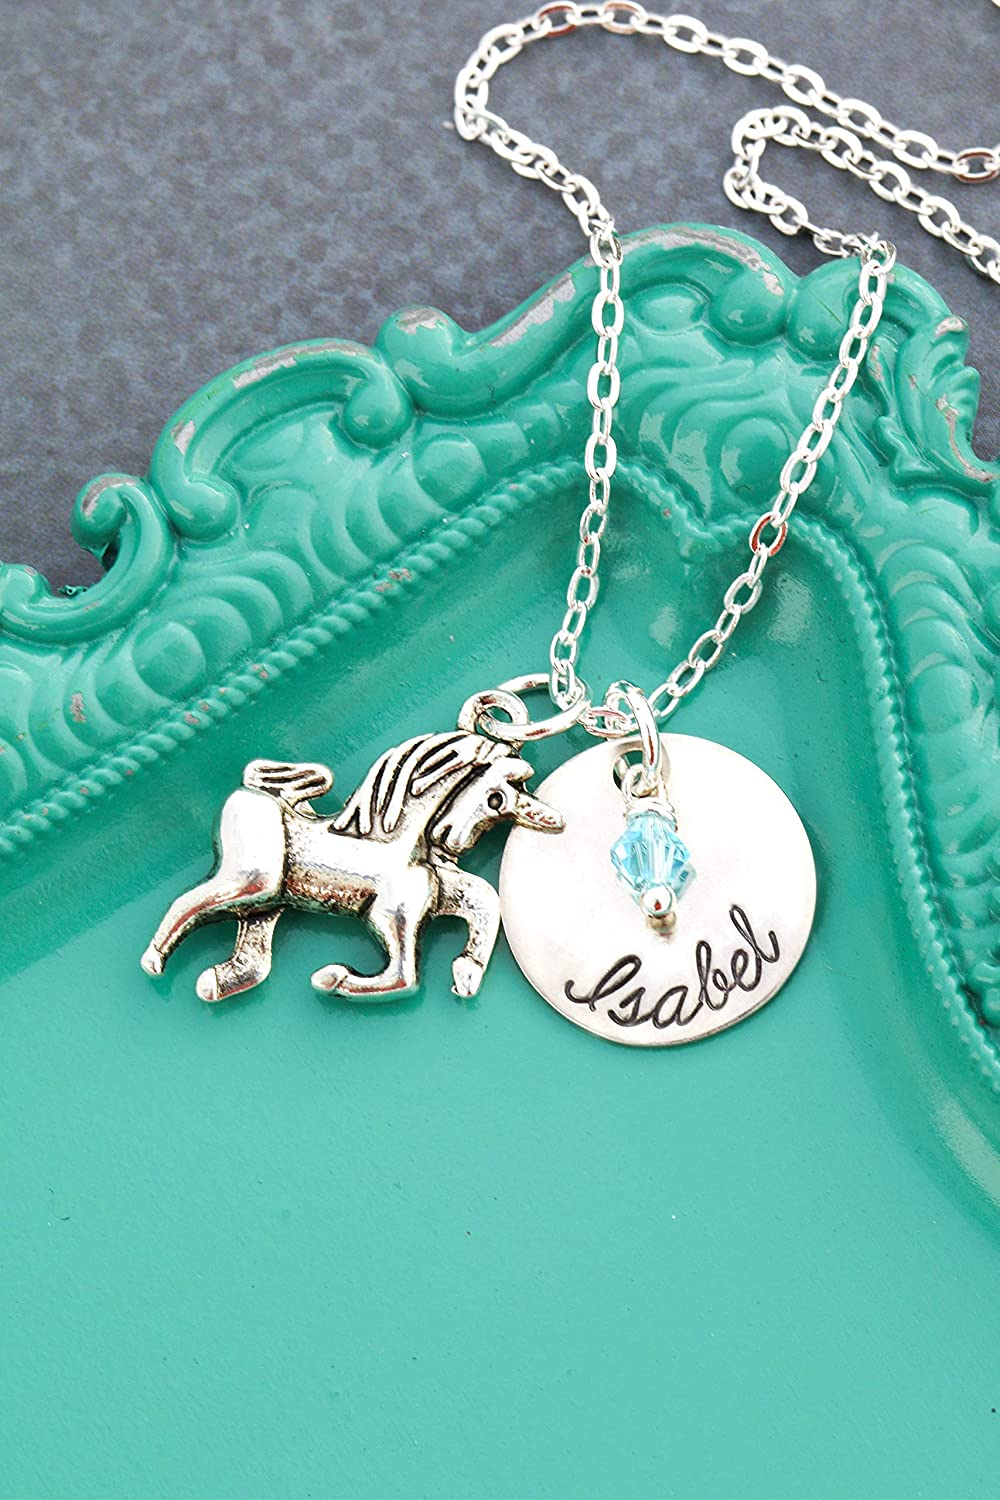 Personalized Unicorn Charms Necklace